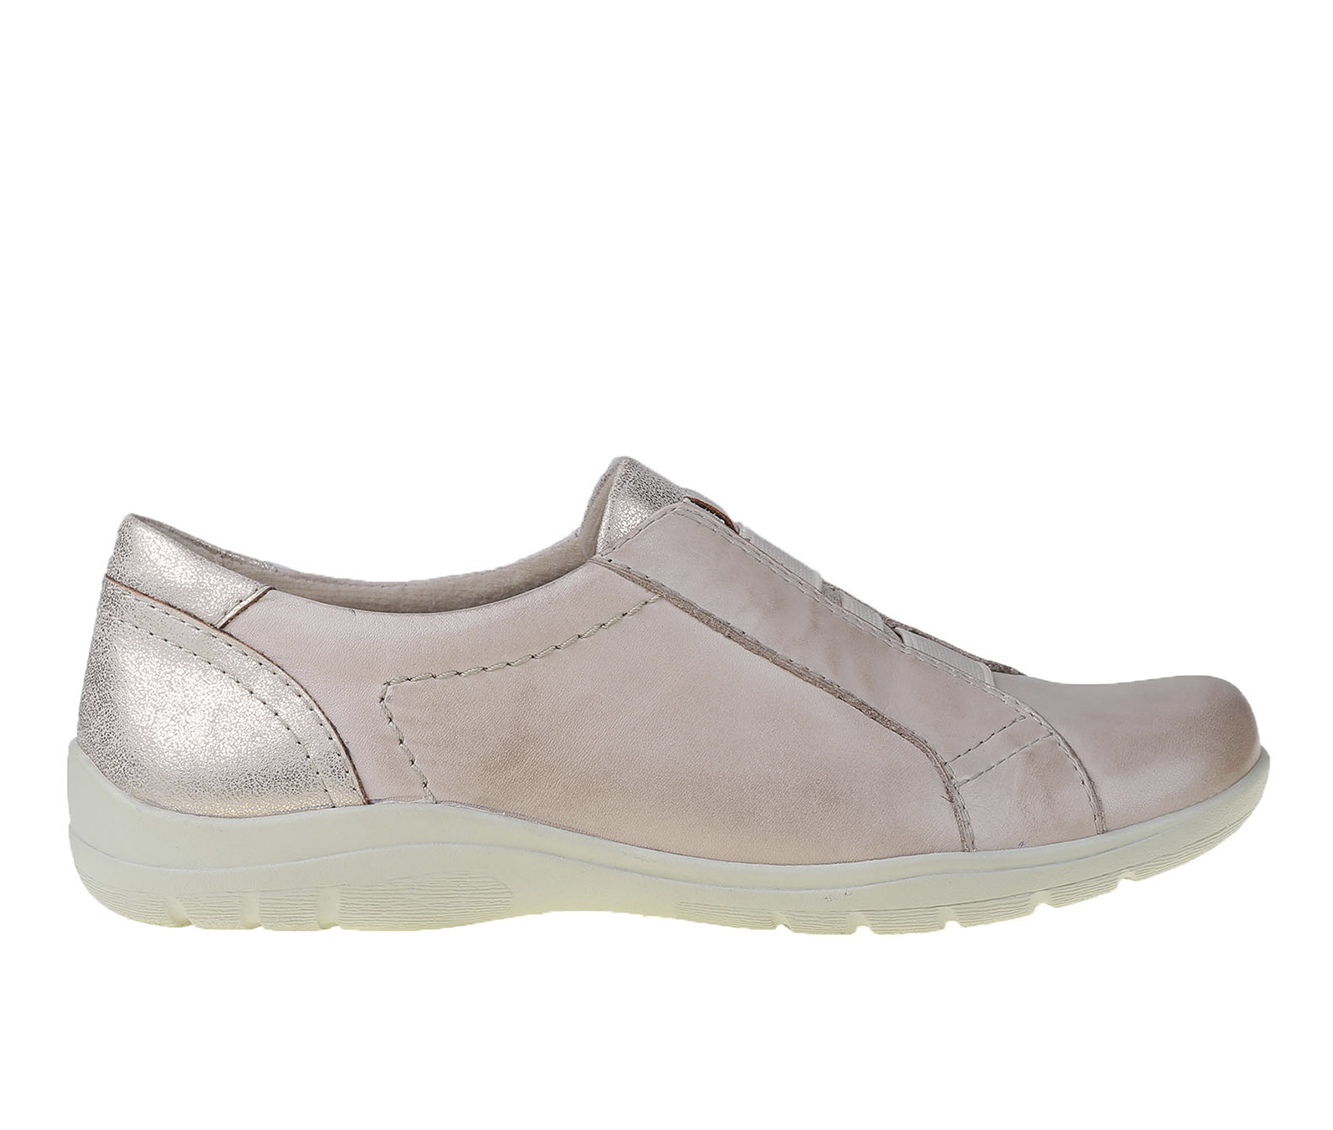 Earth Origins Rapid Toma Women's Shoe (Pink Leather)